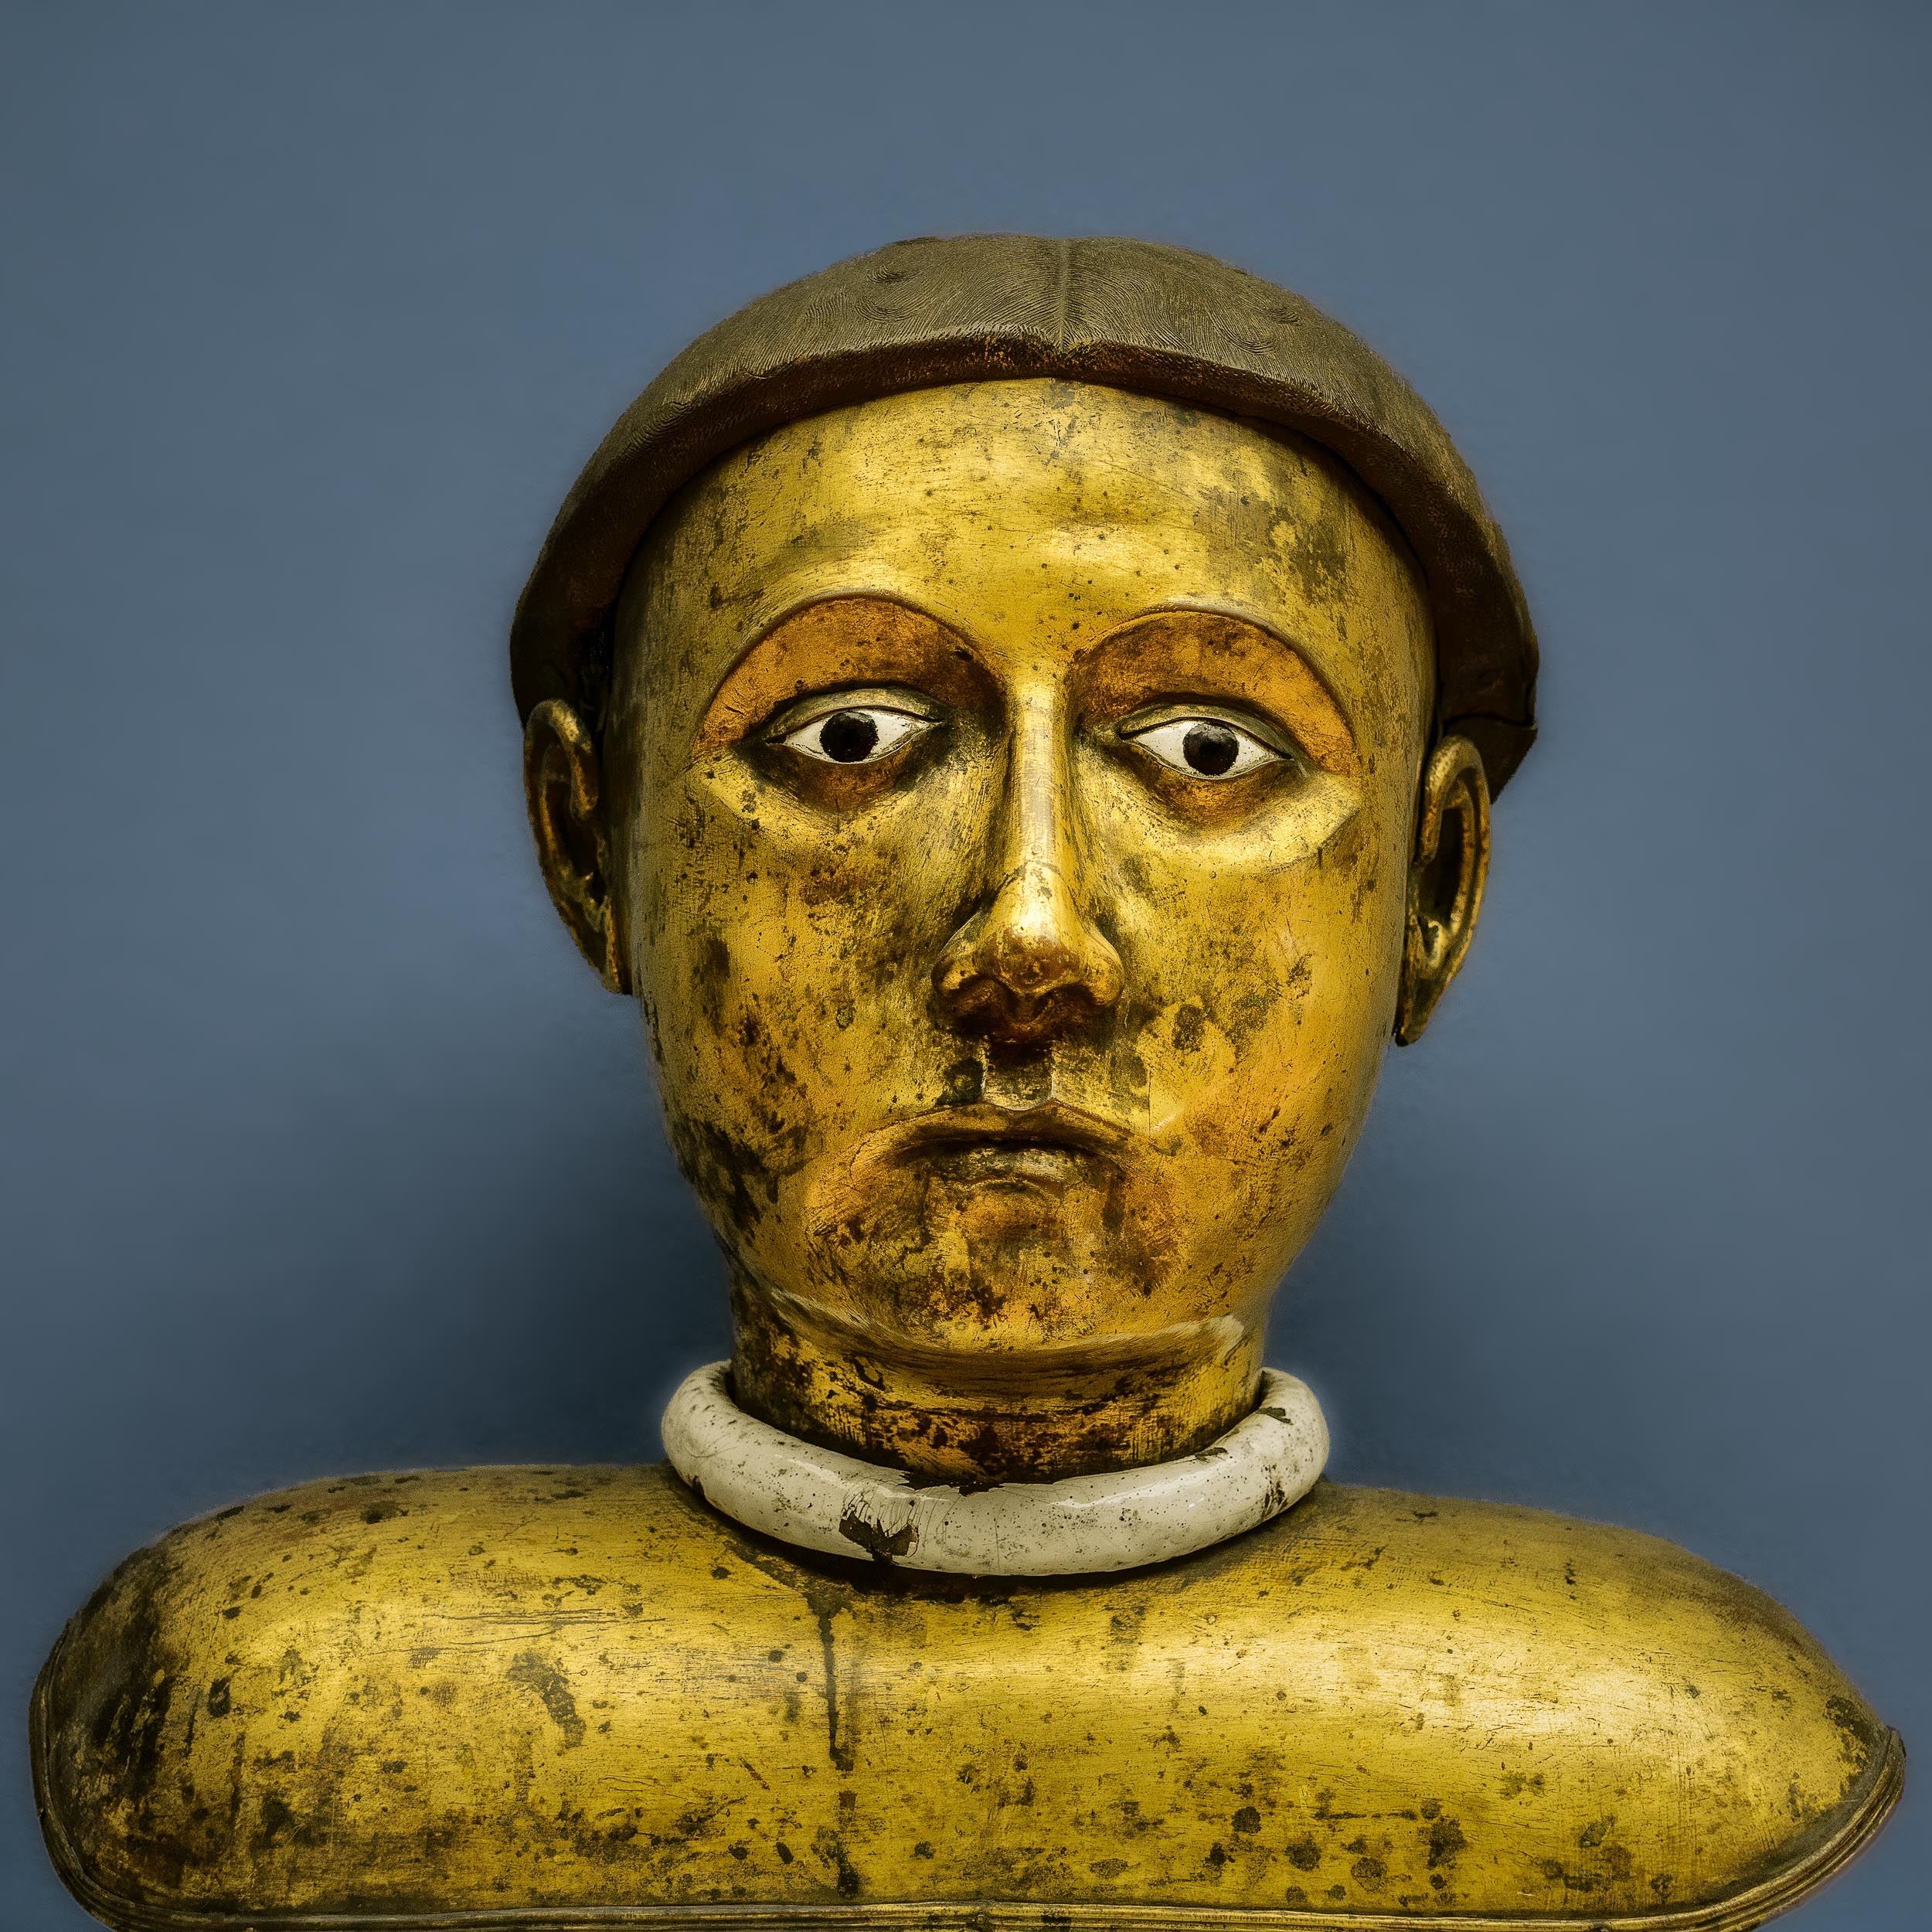 Bust with    extra saturation - Yellow    against    Blue